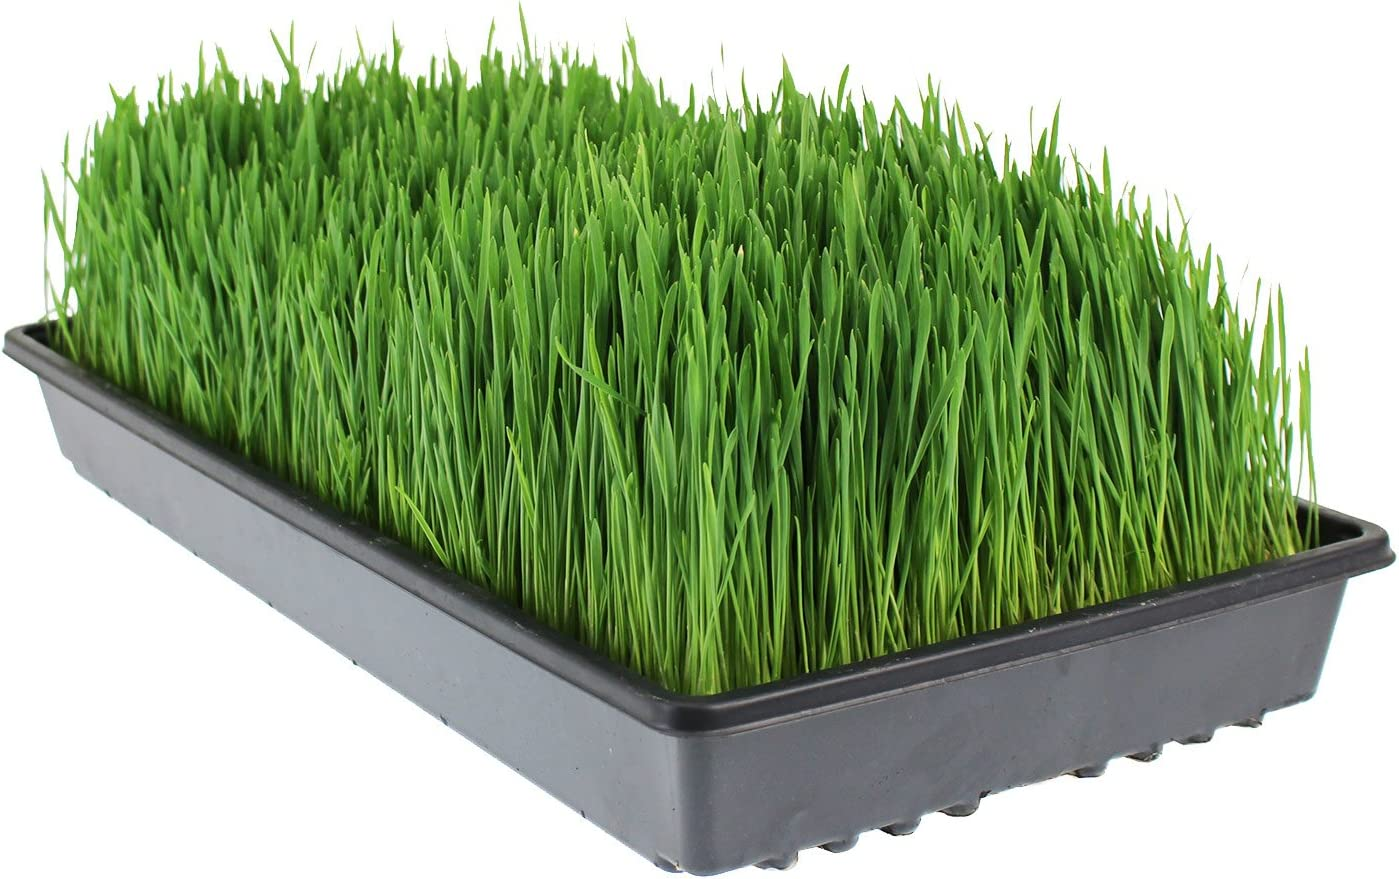 Hydroponic Non-GMO Easy /& Fast to Grow Wheat Grass at Home Organic Handy Pantry Wheatgrass Growing Kit